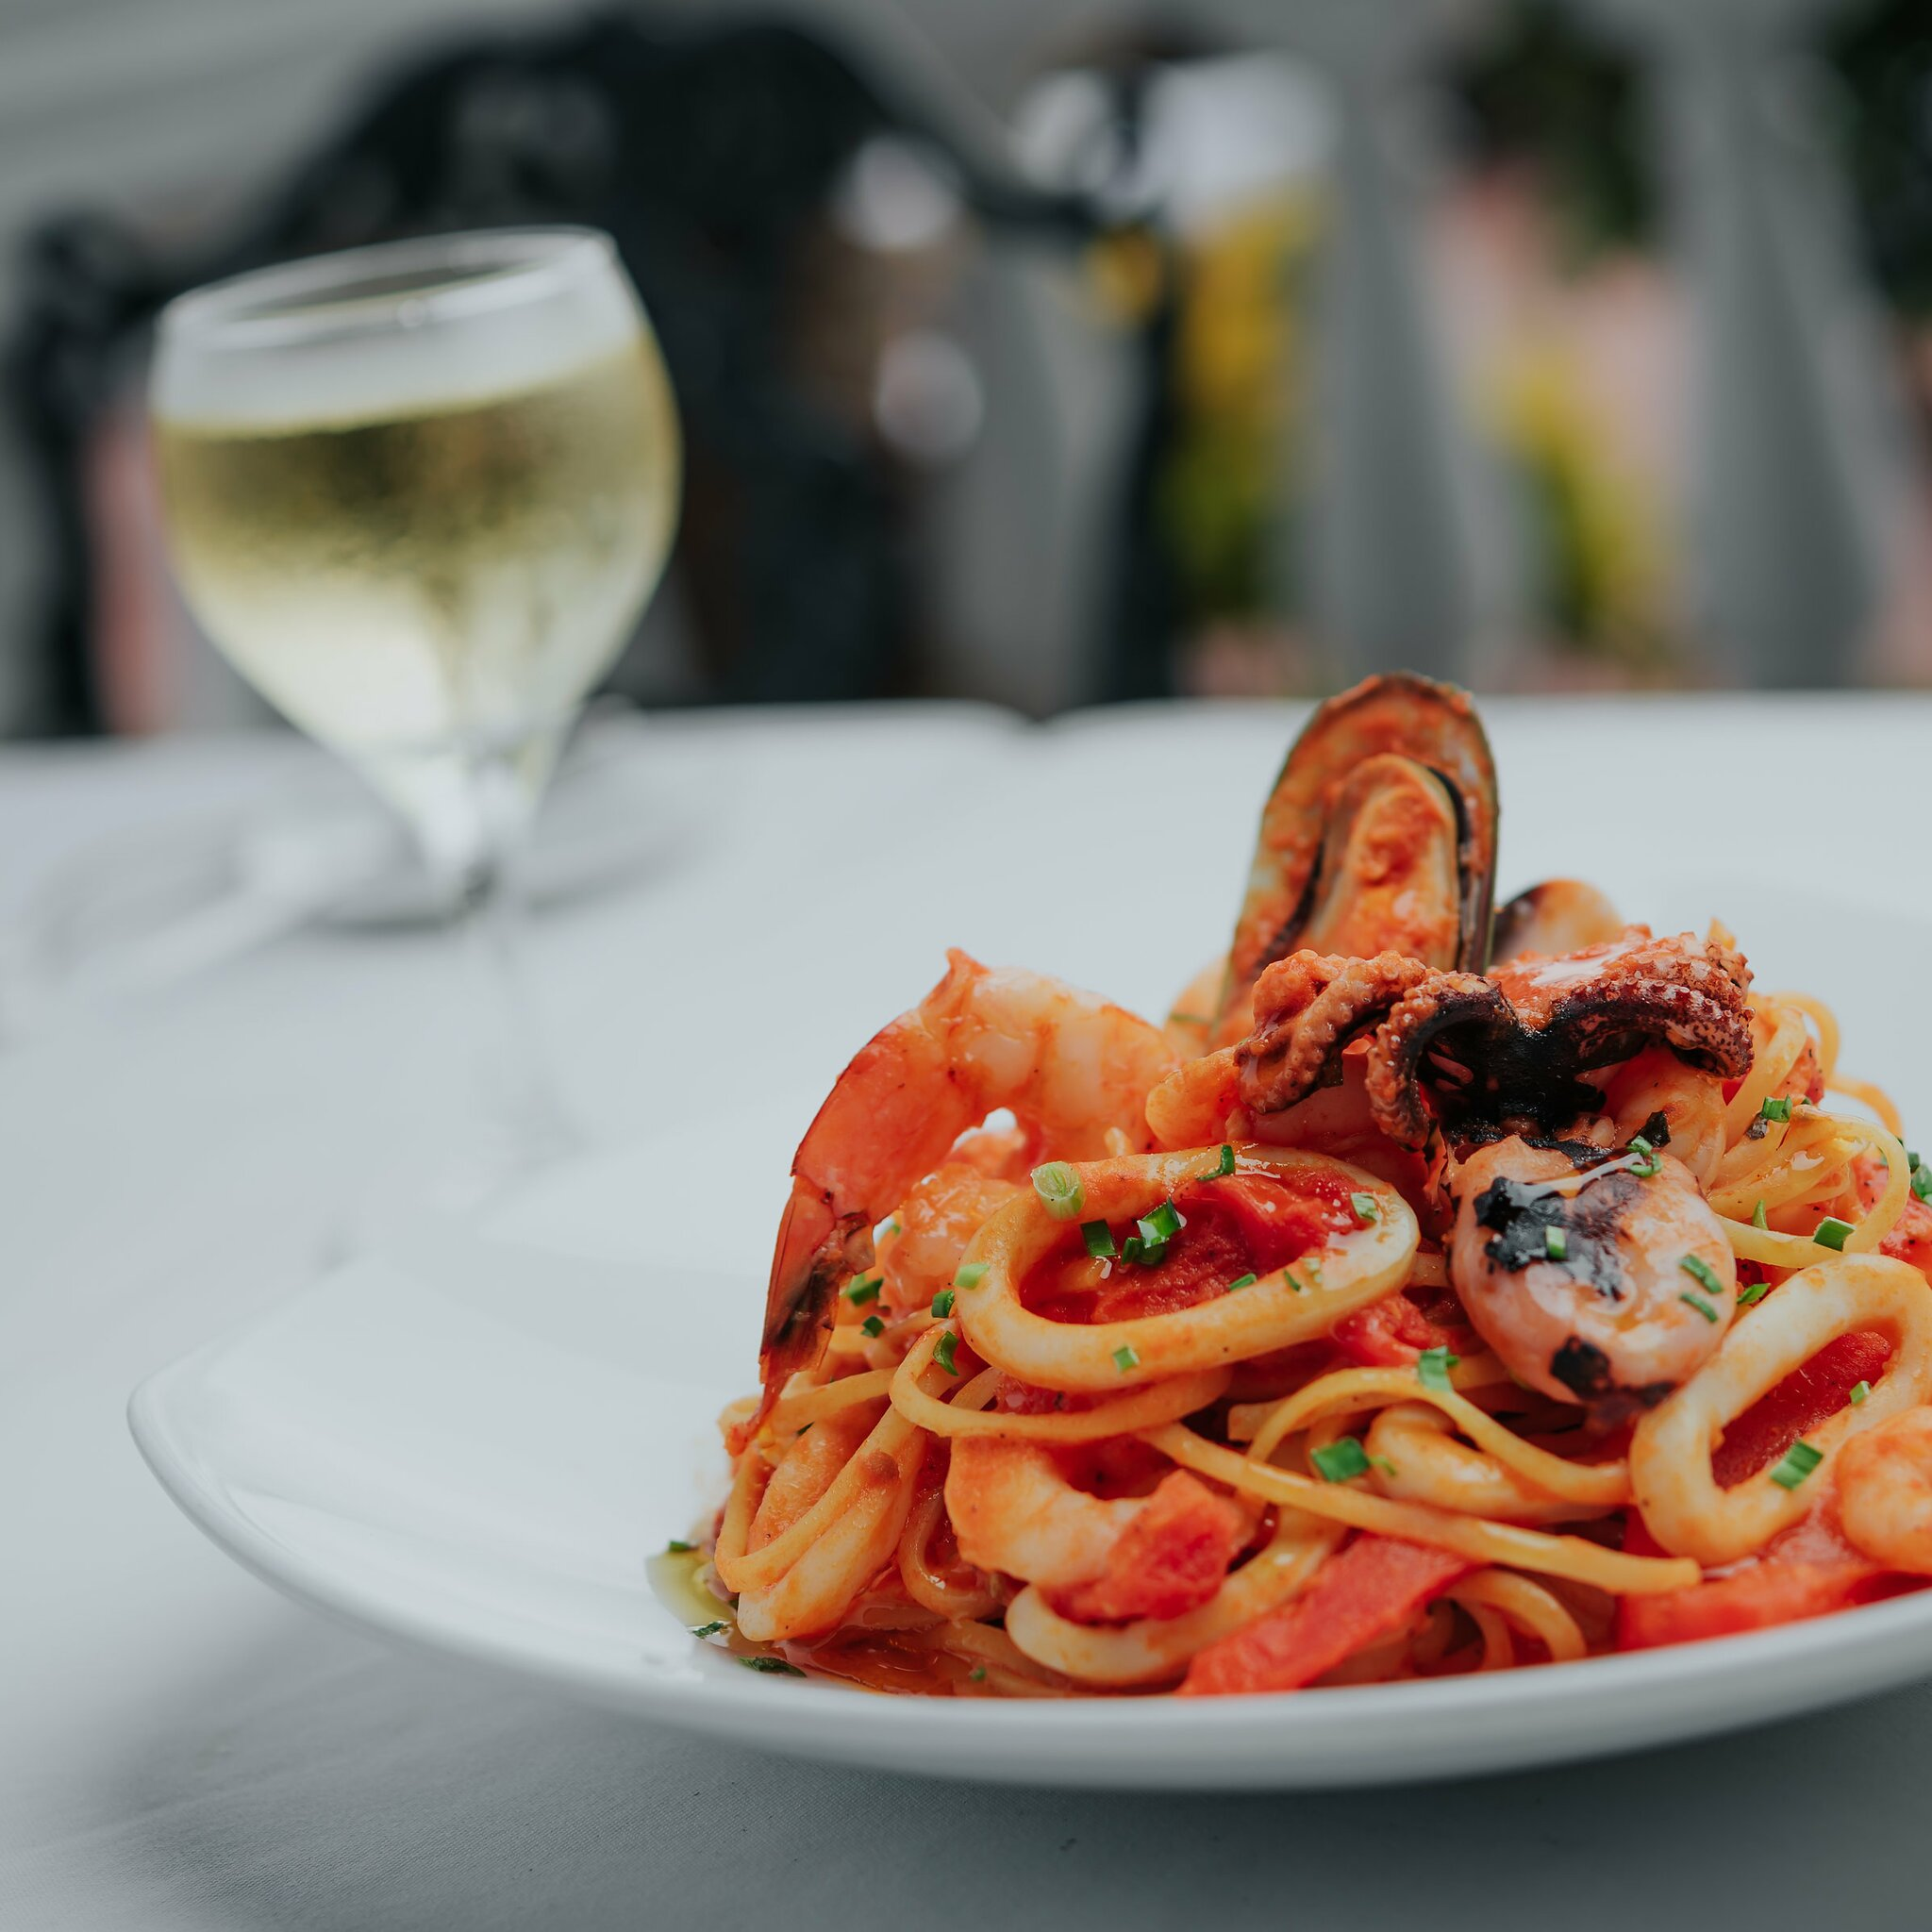 2019 Guide to Aruba's Best Restaurants – Top Places to Eat in